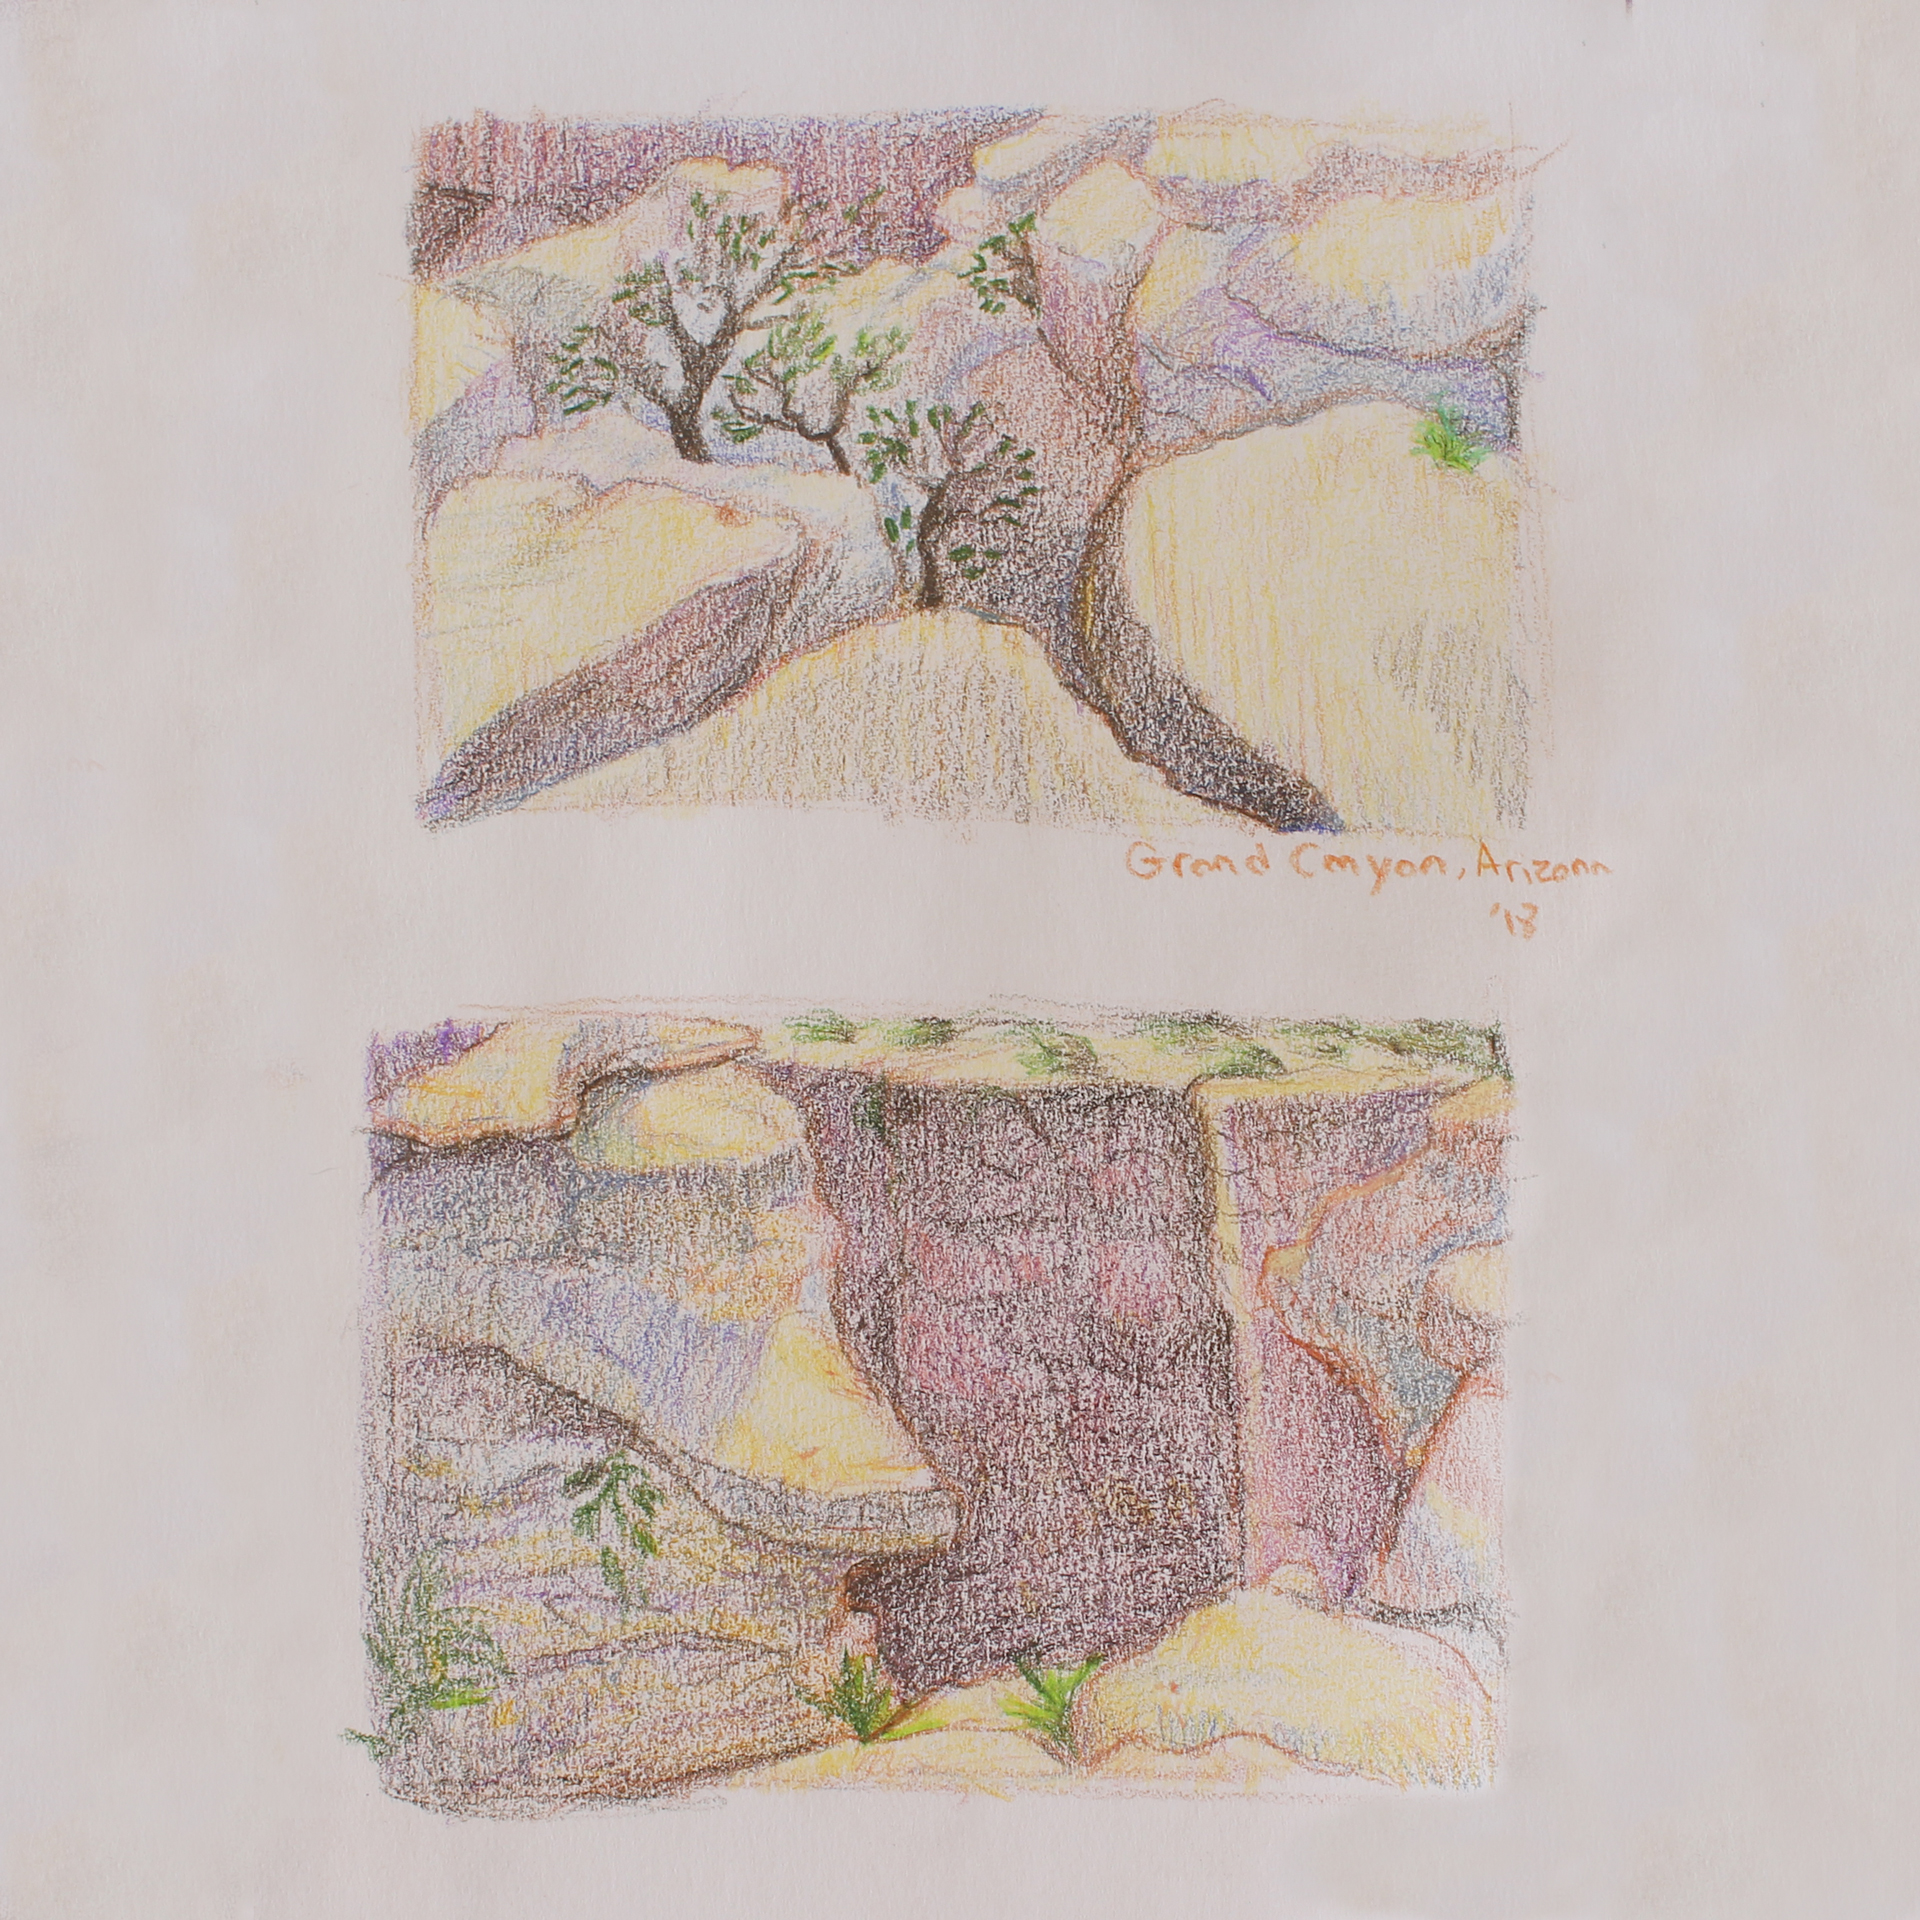 Grandcanyon_sketches.jpg